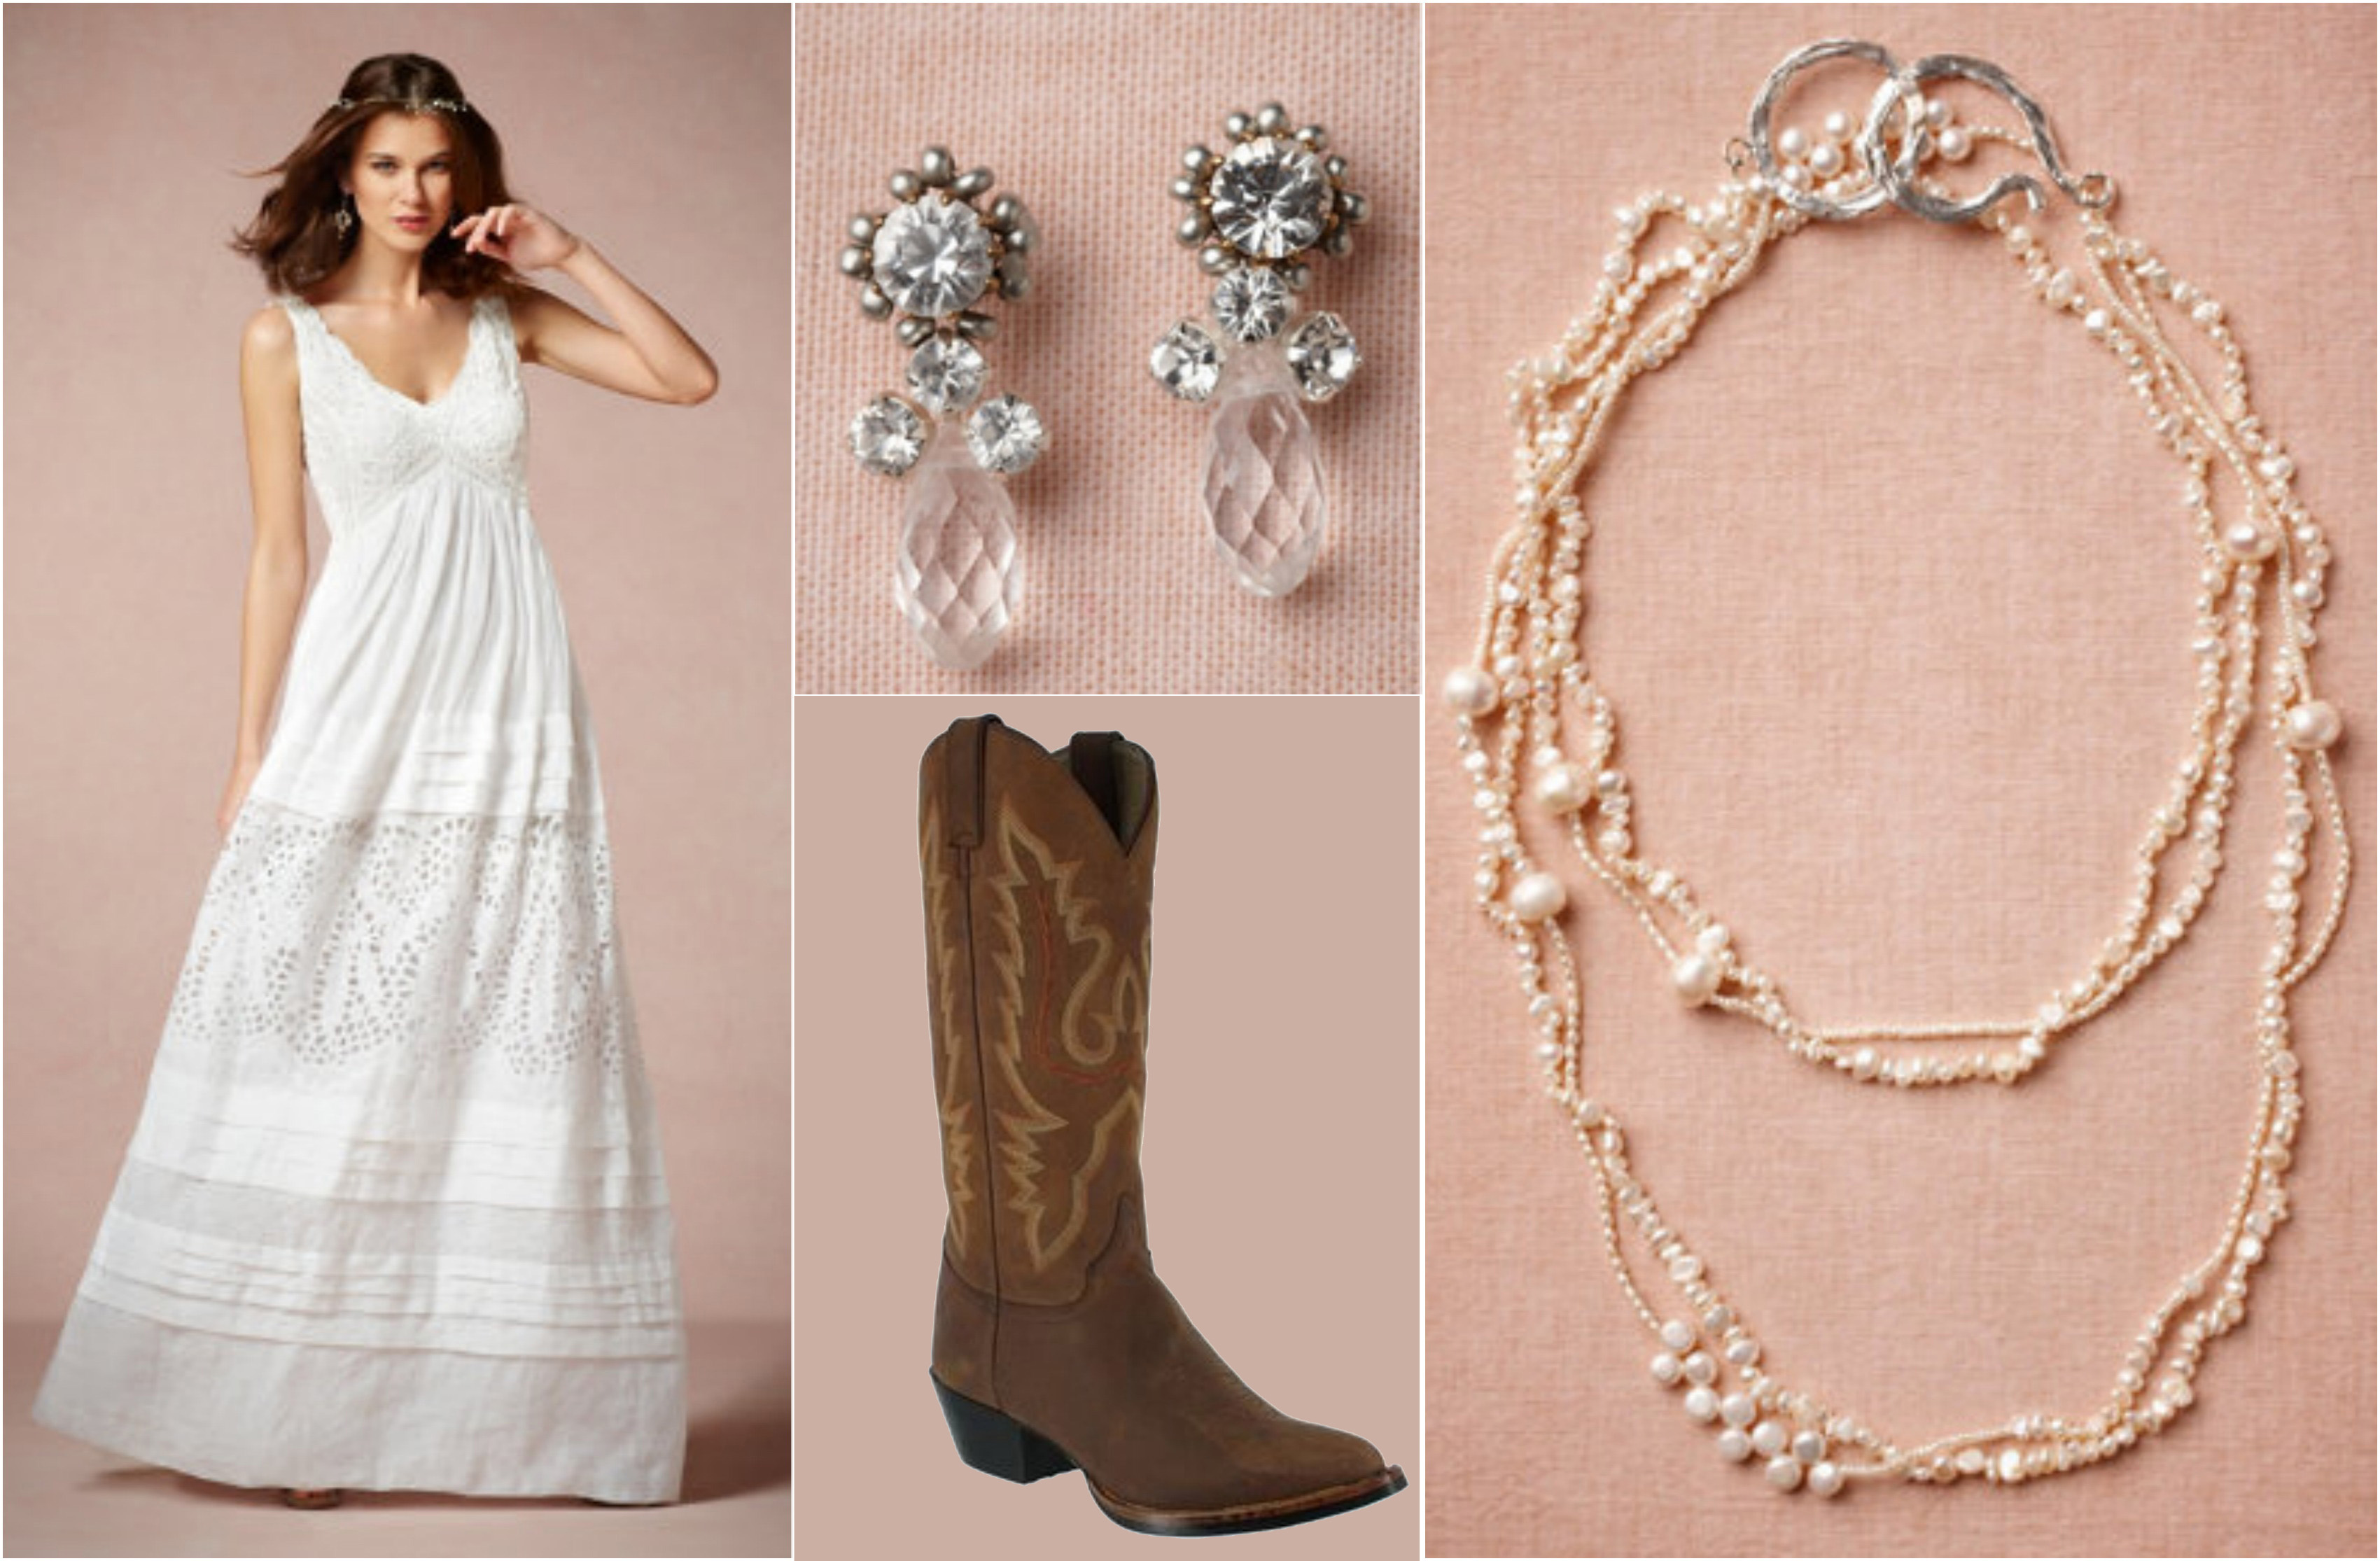 To Wear A Dress : Beautiful And Elegant - Dresses Ask